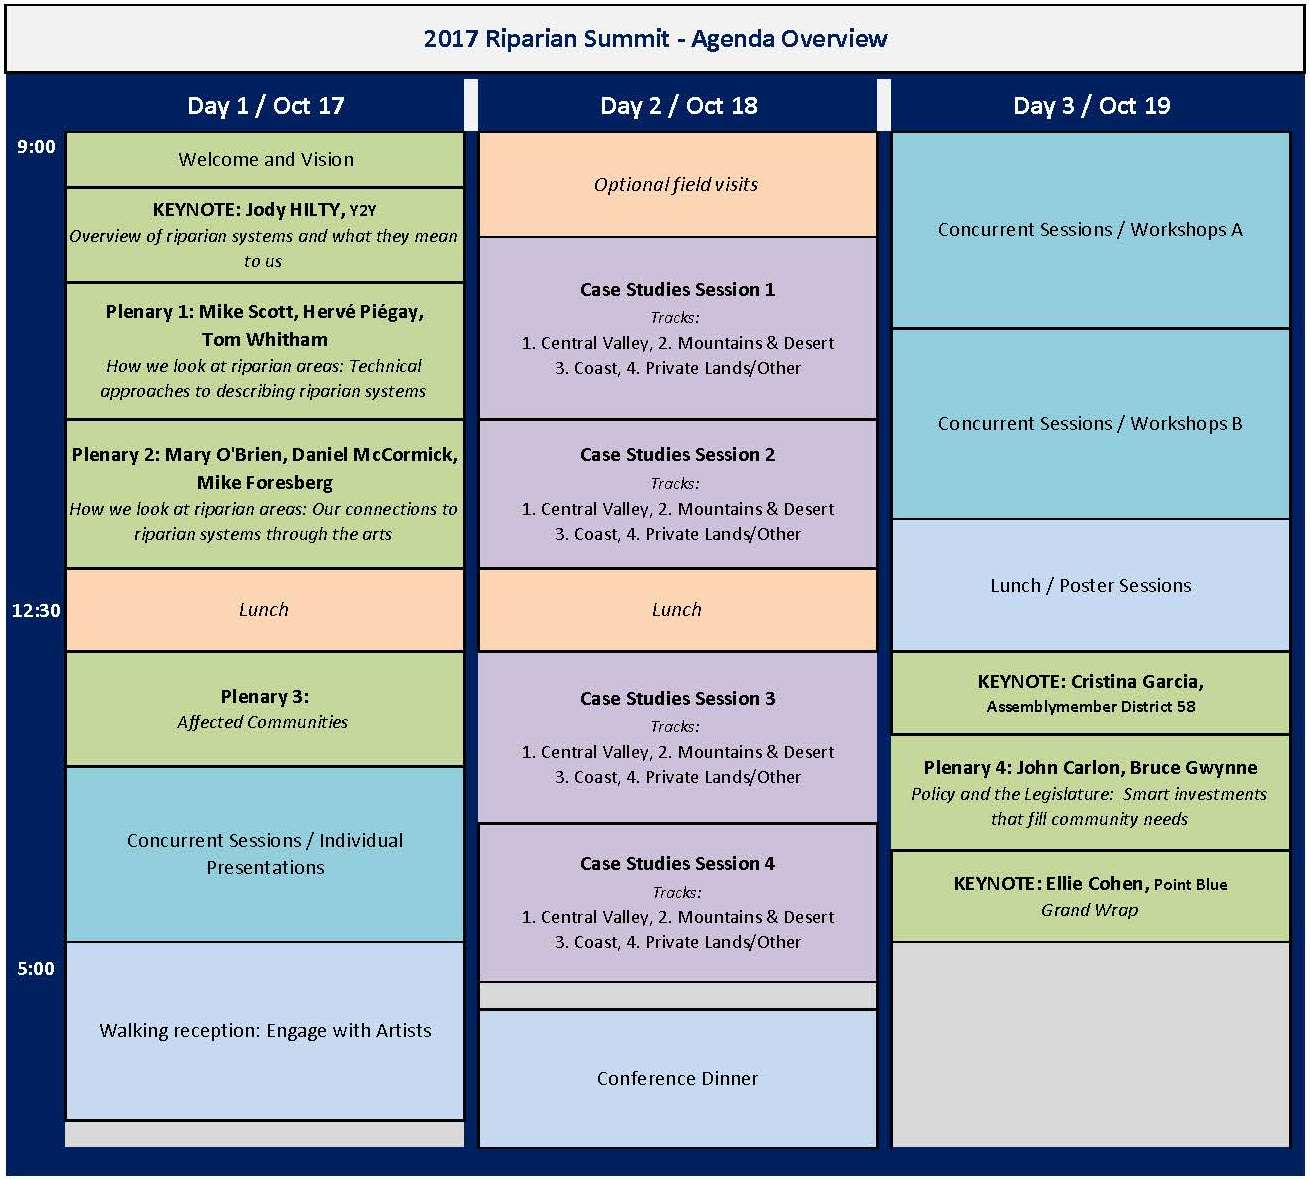 Agenda overview image